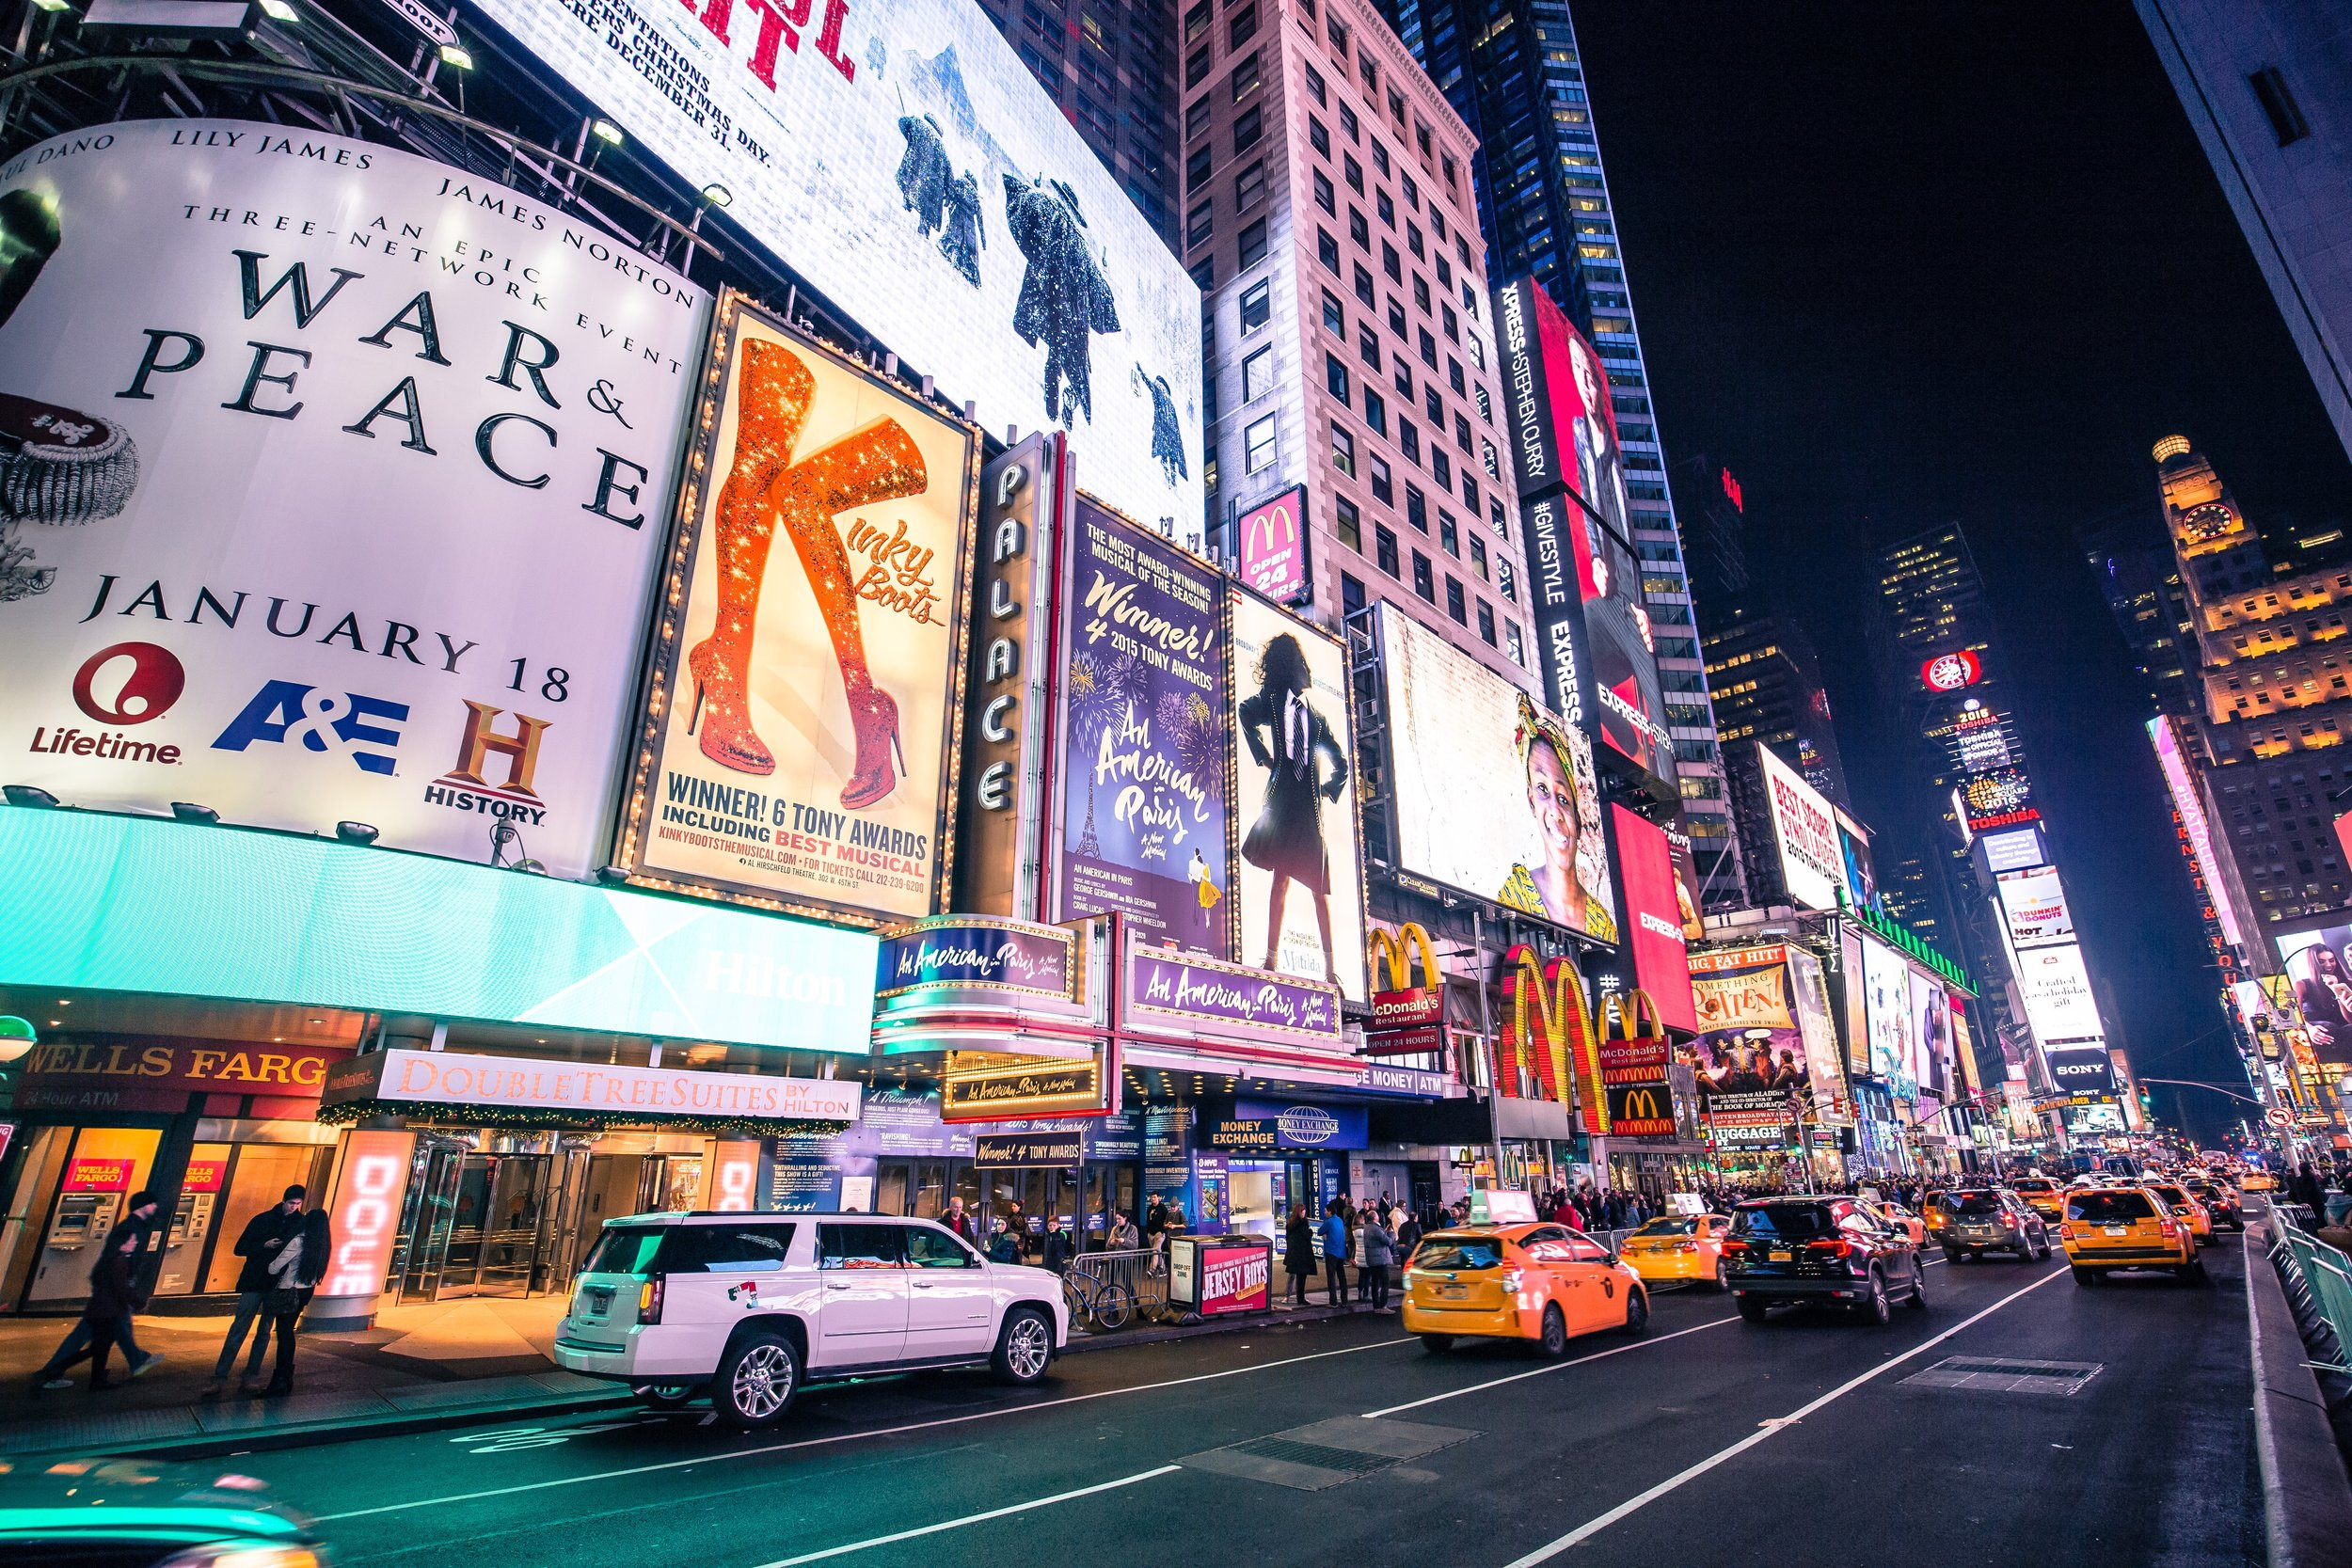 LIVE AUCTION ITEM - All-Access Broadway Package